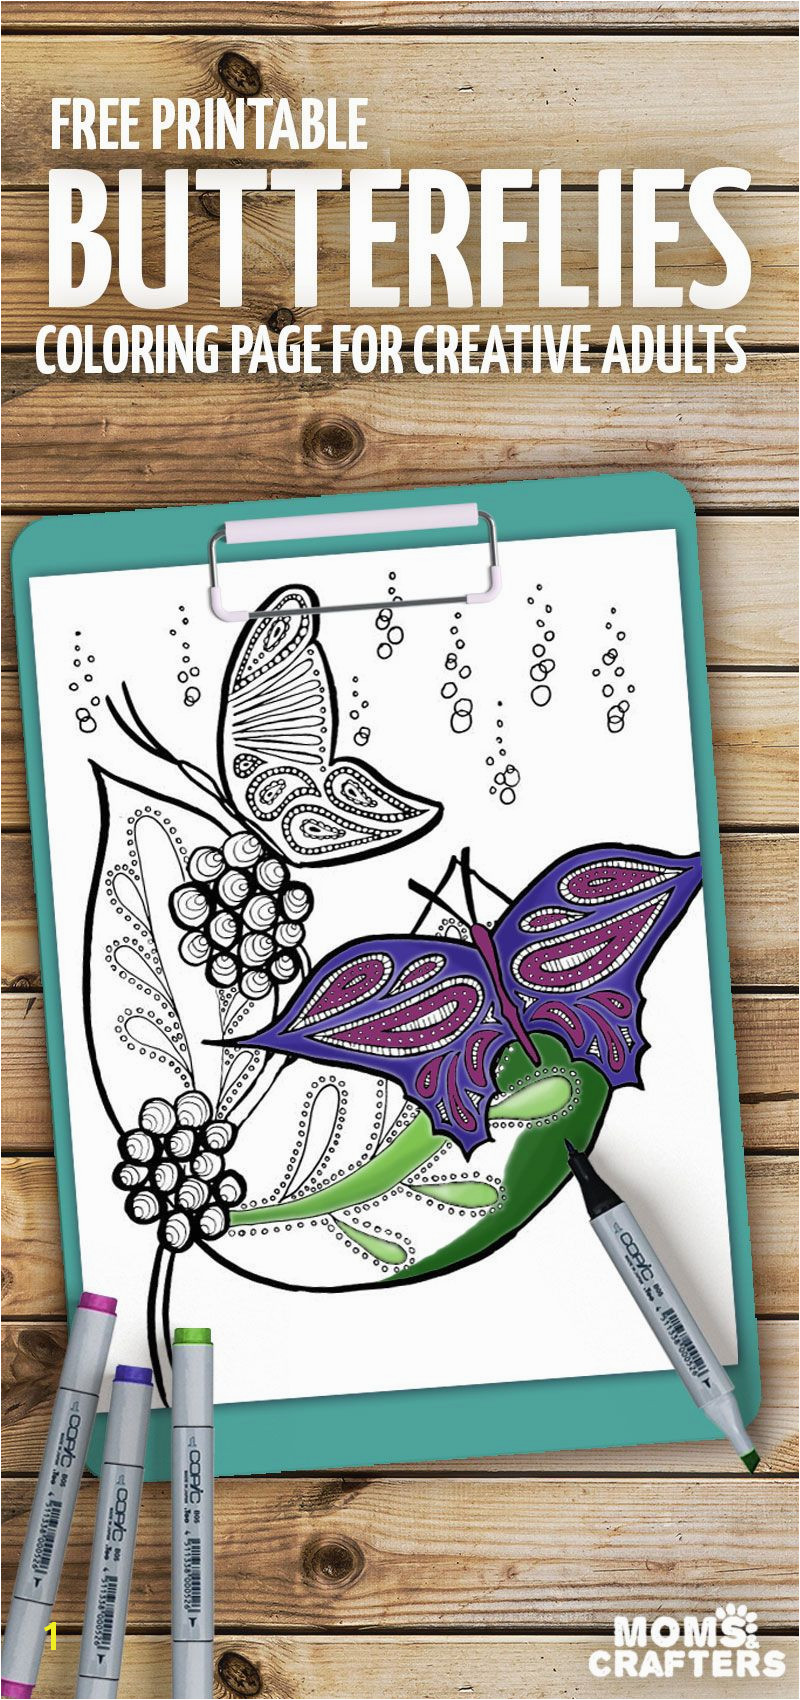 Print these beautiful butterflies coloring pages for adults these stunning Spring and Summer coloring pages are totally relaxing and colour therapy